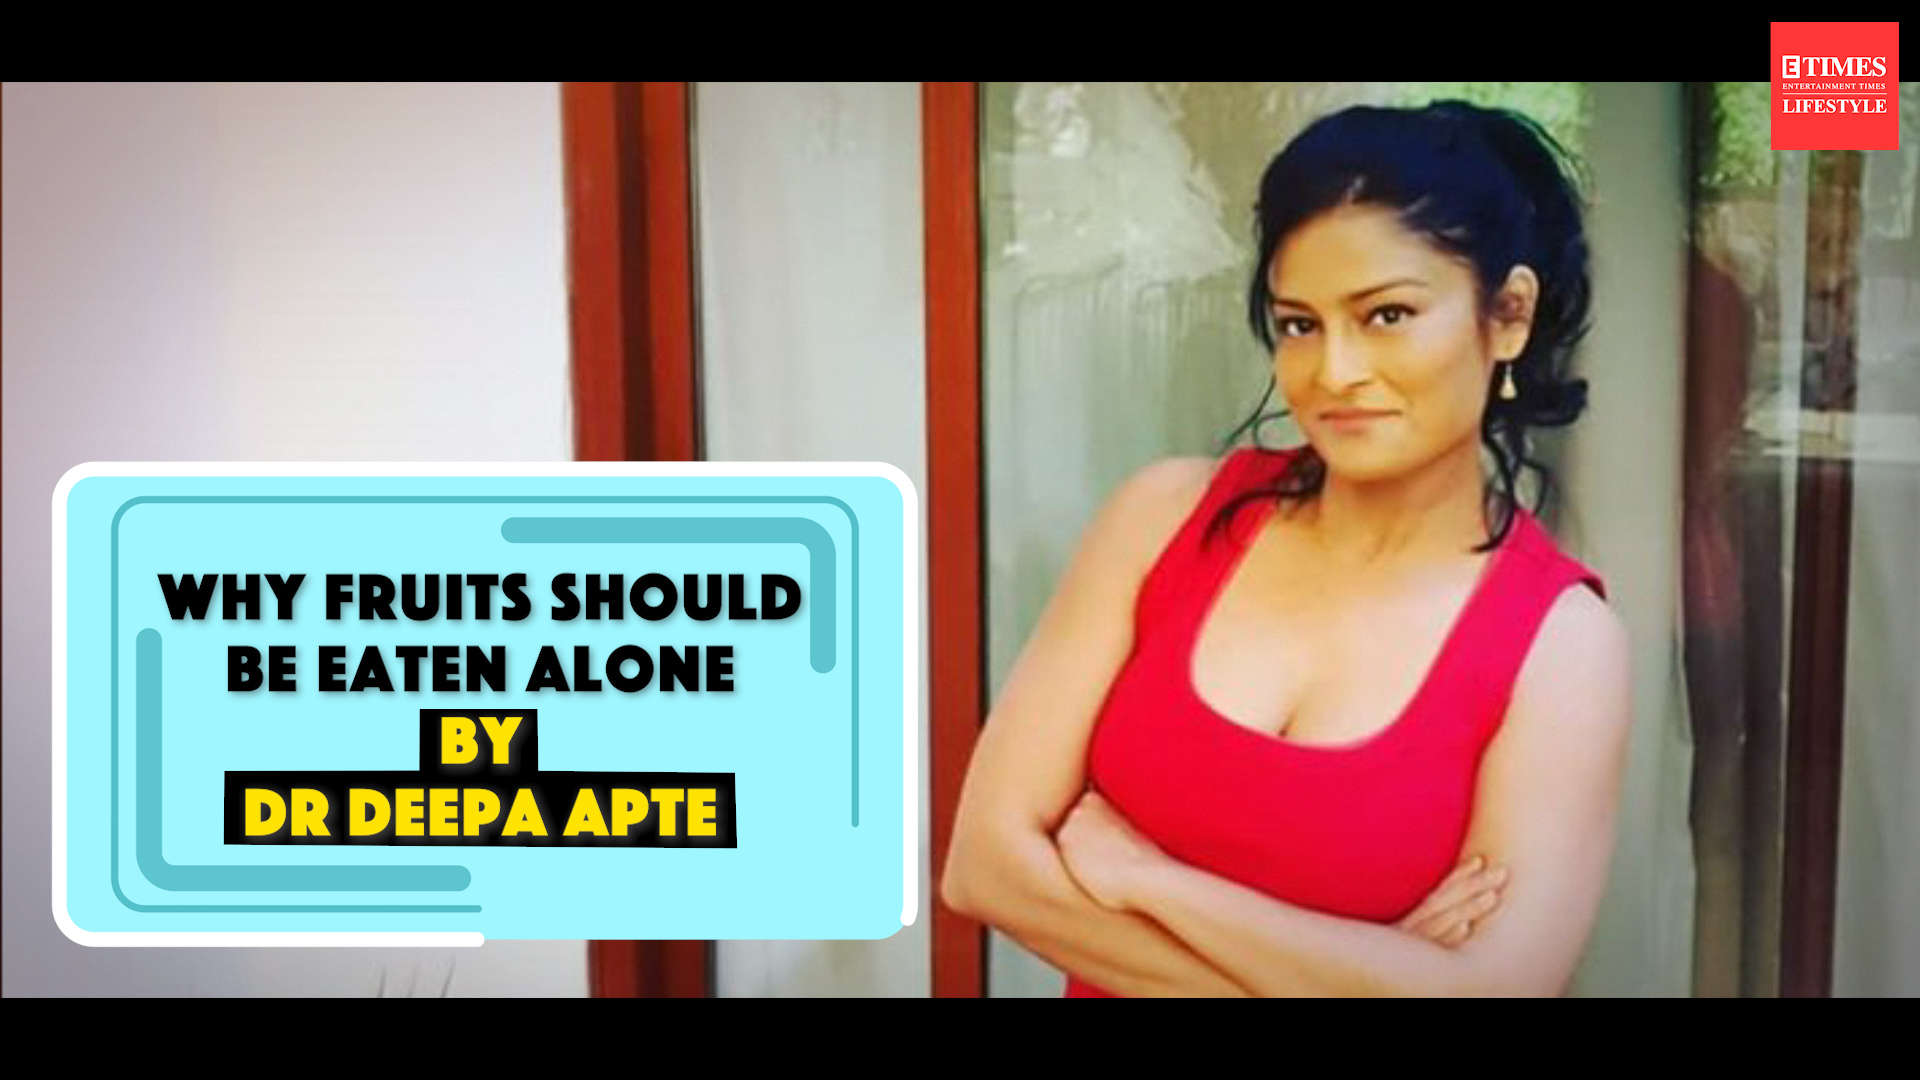 why-fruits-should-be-eaten-alone-by-dr-deepa-apte